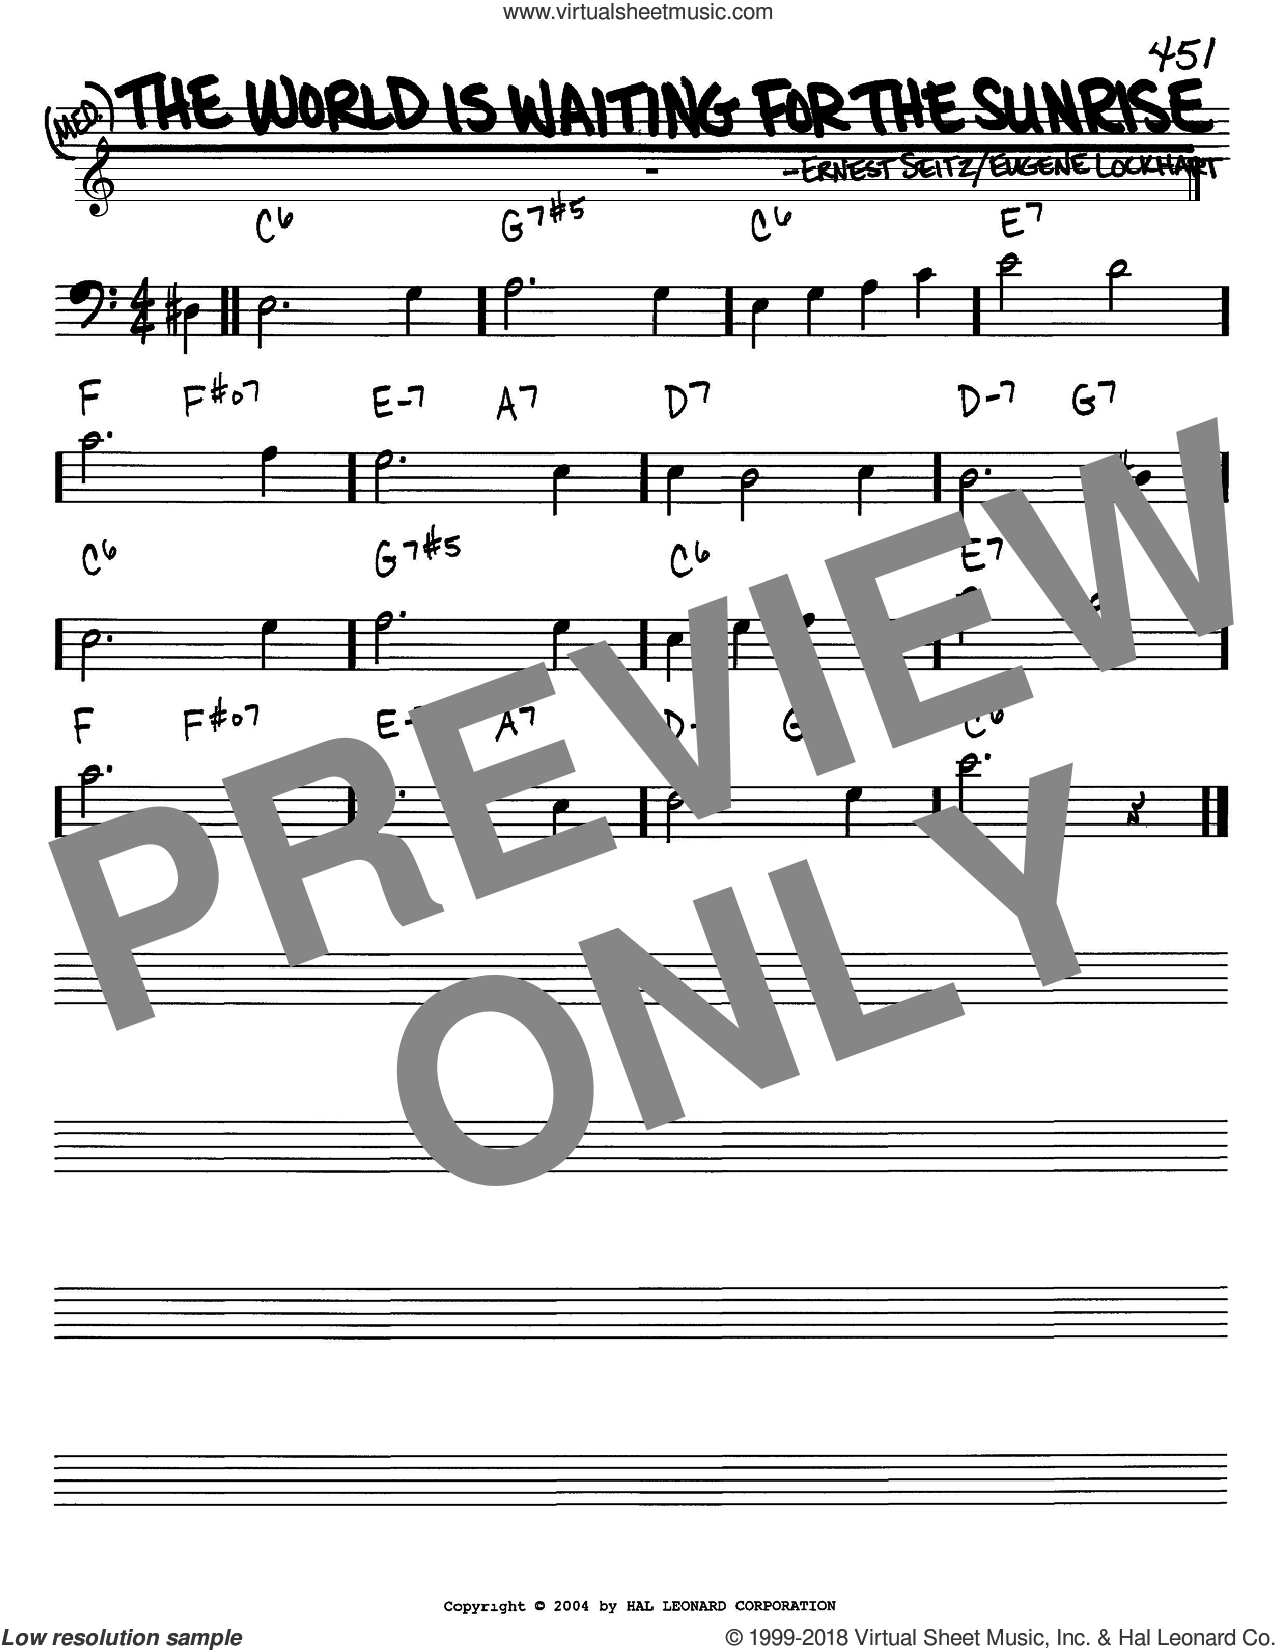 The World Is Waiting For The Sunrise sheet music for voice and other instruments (Bass Clef ) by Ernest Seitz